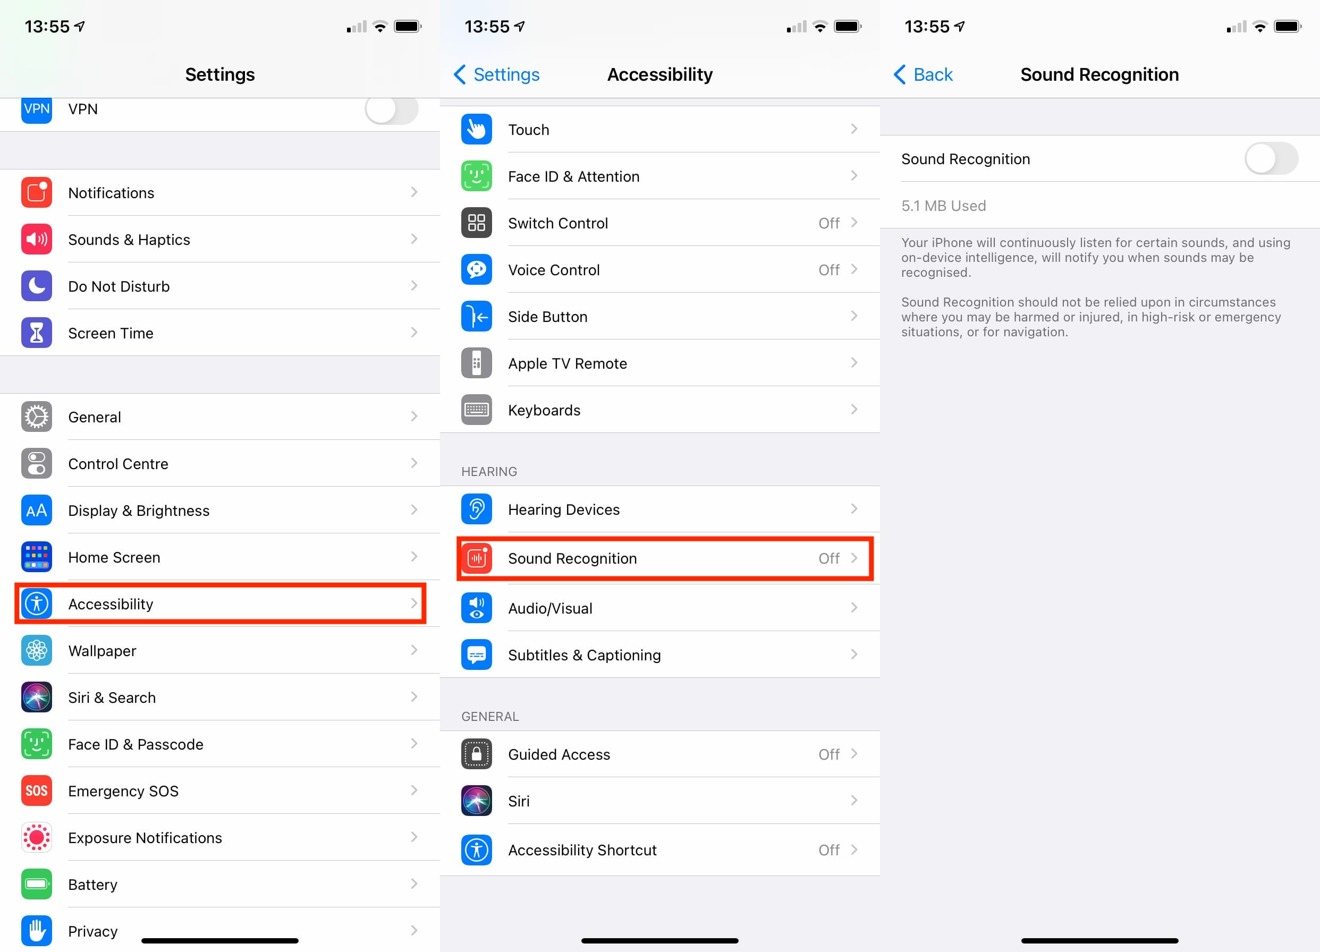 Where to find Sound Recognition in the Settings app.